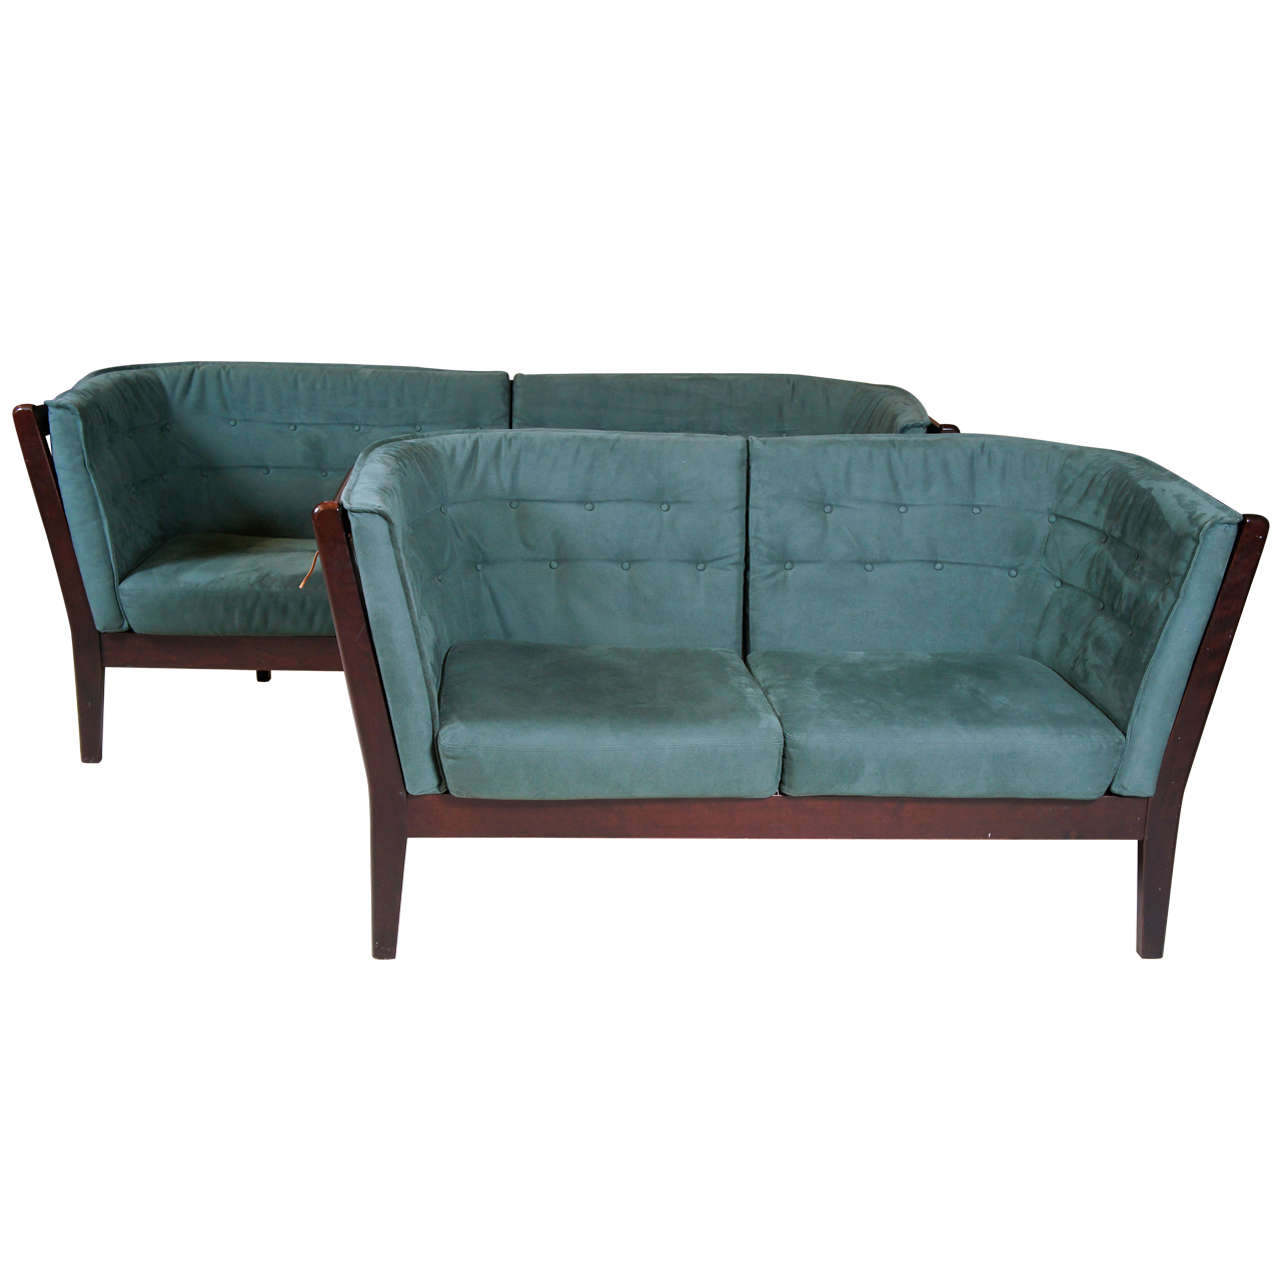 Two Danish Modern Sofas At 1stdibs